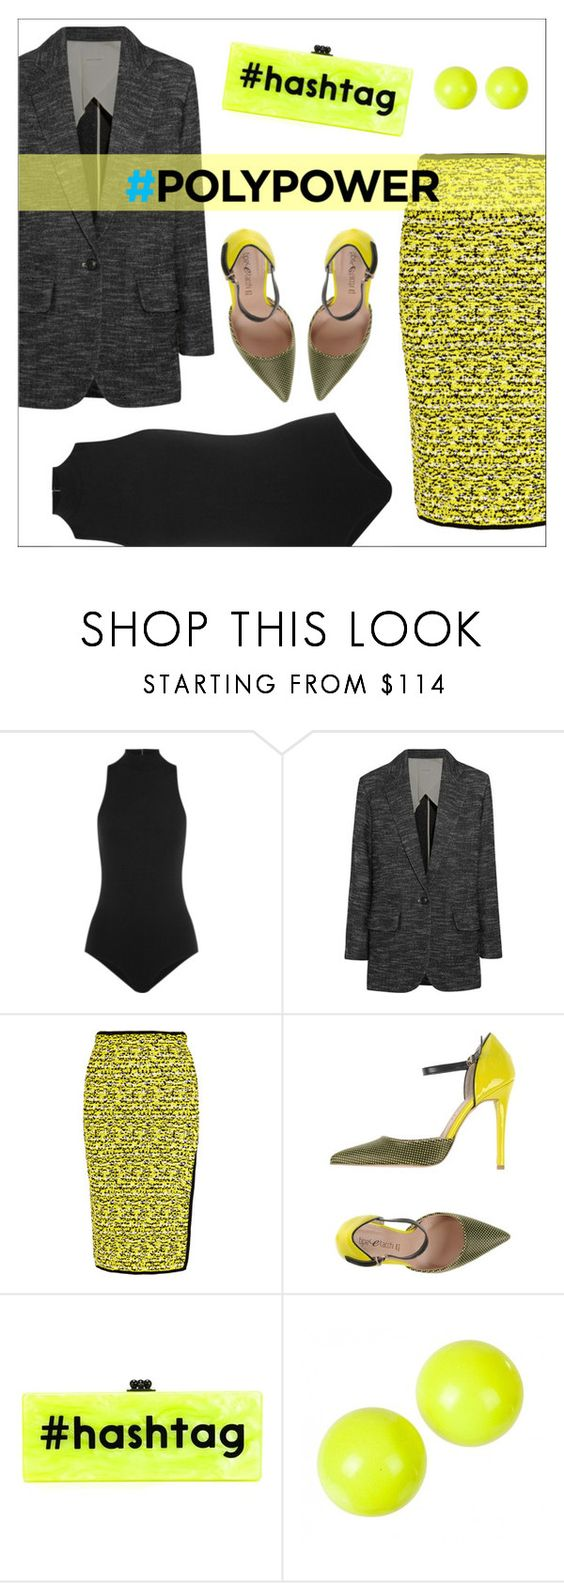 """What's Your Power Outfit?"" by danielle-487 ❤ liked on Polyvore featuring Fleur du Mal, Étoile Isabel Marant, rag & bone, Tipe e Tacchi, Edie Parker, Alexis Bittar and PolyPower"